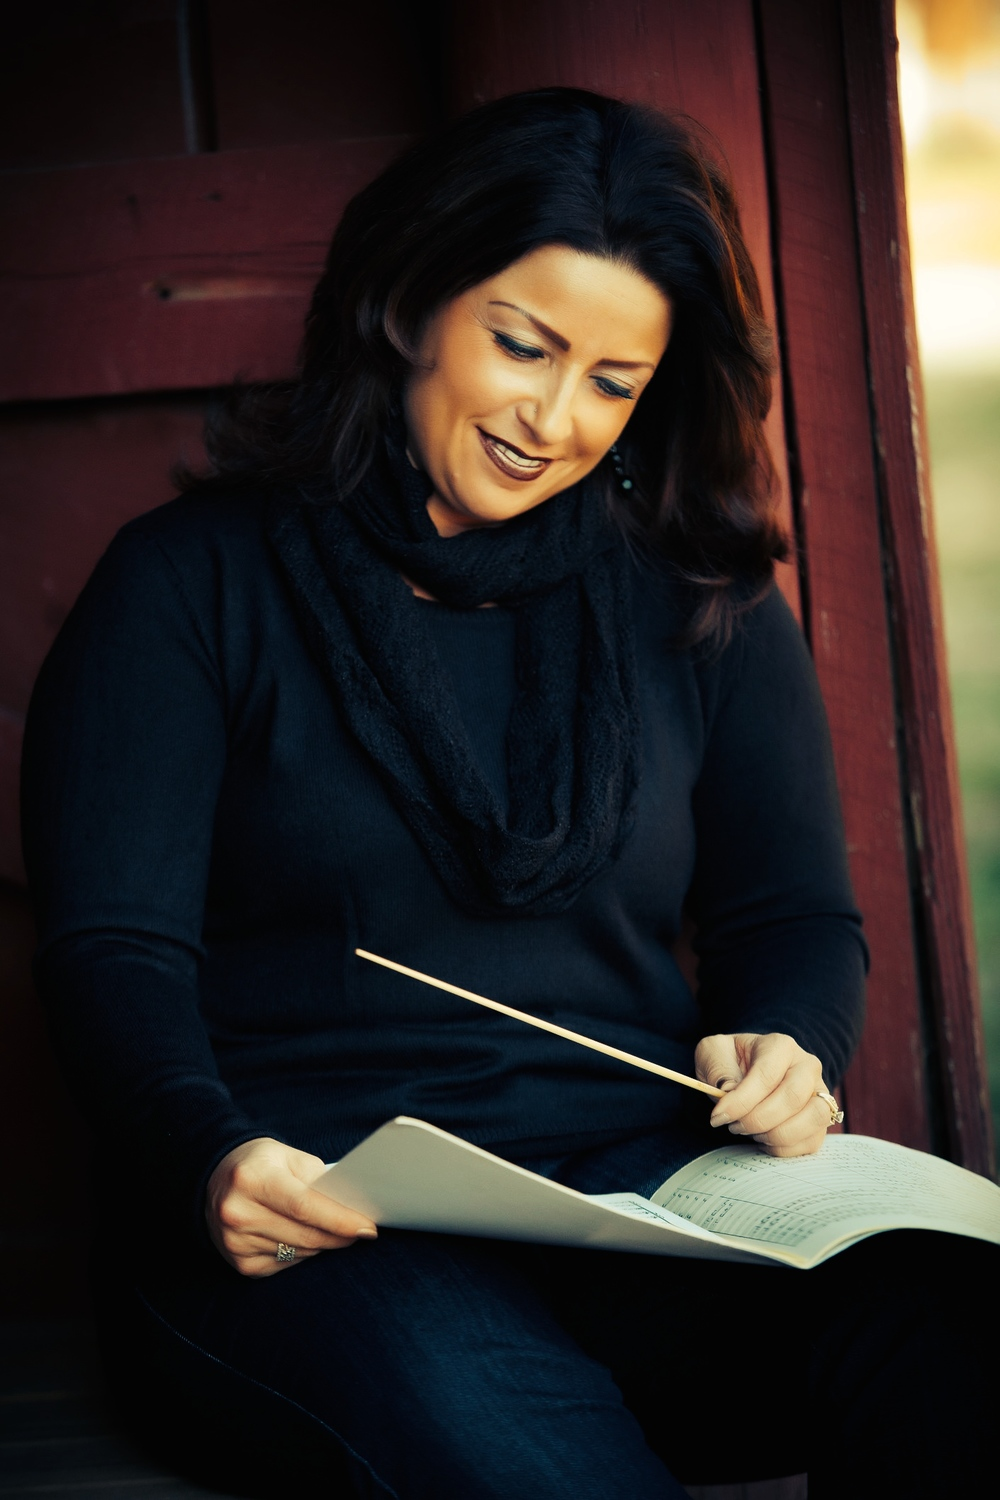 Greater Cleveland Concert Band's new Music Director and Conductor, Sarah Pearson, 2014. Read story here:    http://nl.newsbank.com/nl-search/we/Archives?p_action=doc&p_docid=151C8EEF9BC14150&p_docnum=3&s_trackval=&s_subexpires=06/03/2015 18:39 PM&s_dlid=DL0115050500473823620&s_accountid=AC0115050500441523515&s_referrer=&s_siteloc=&s_orderid=NB01150505004736